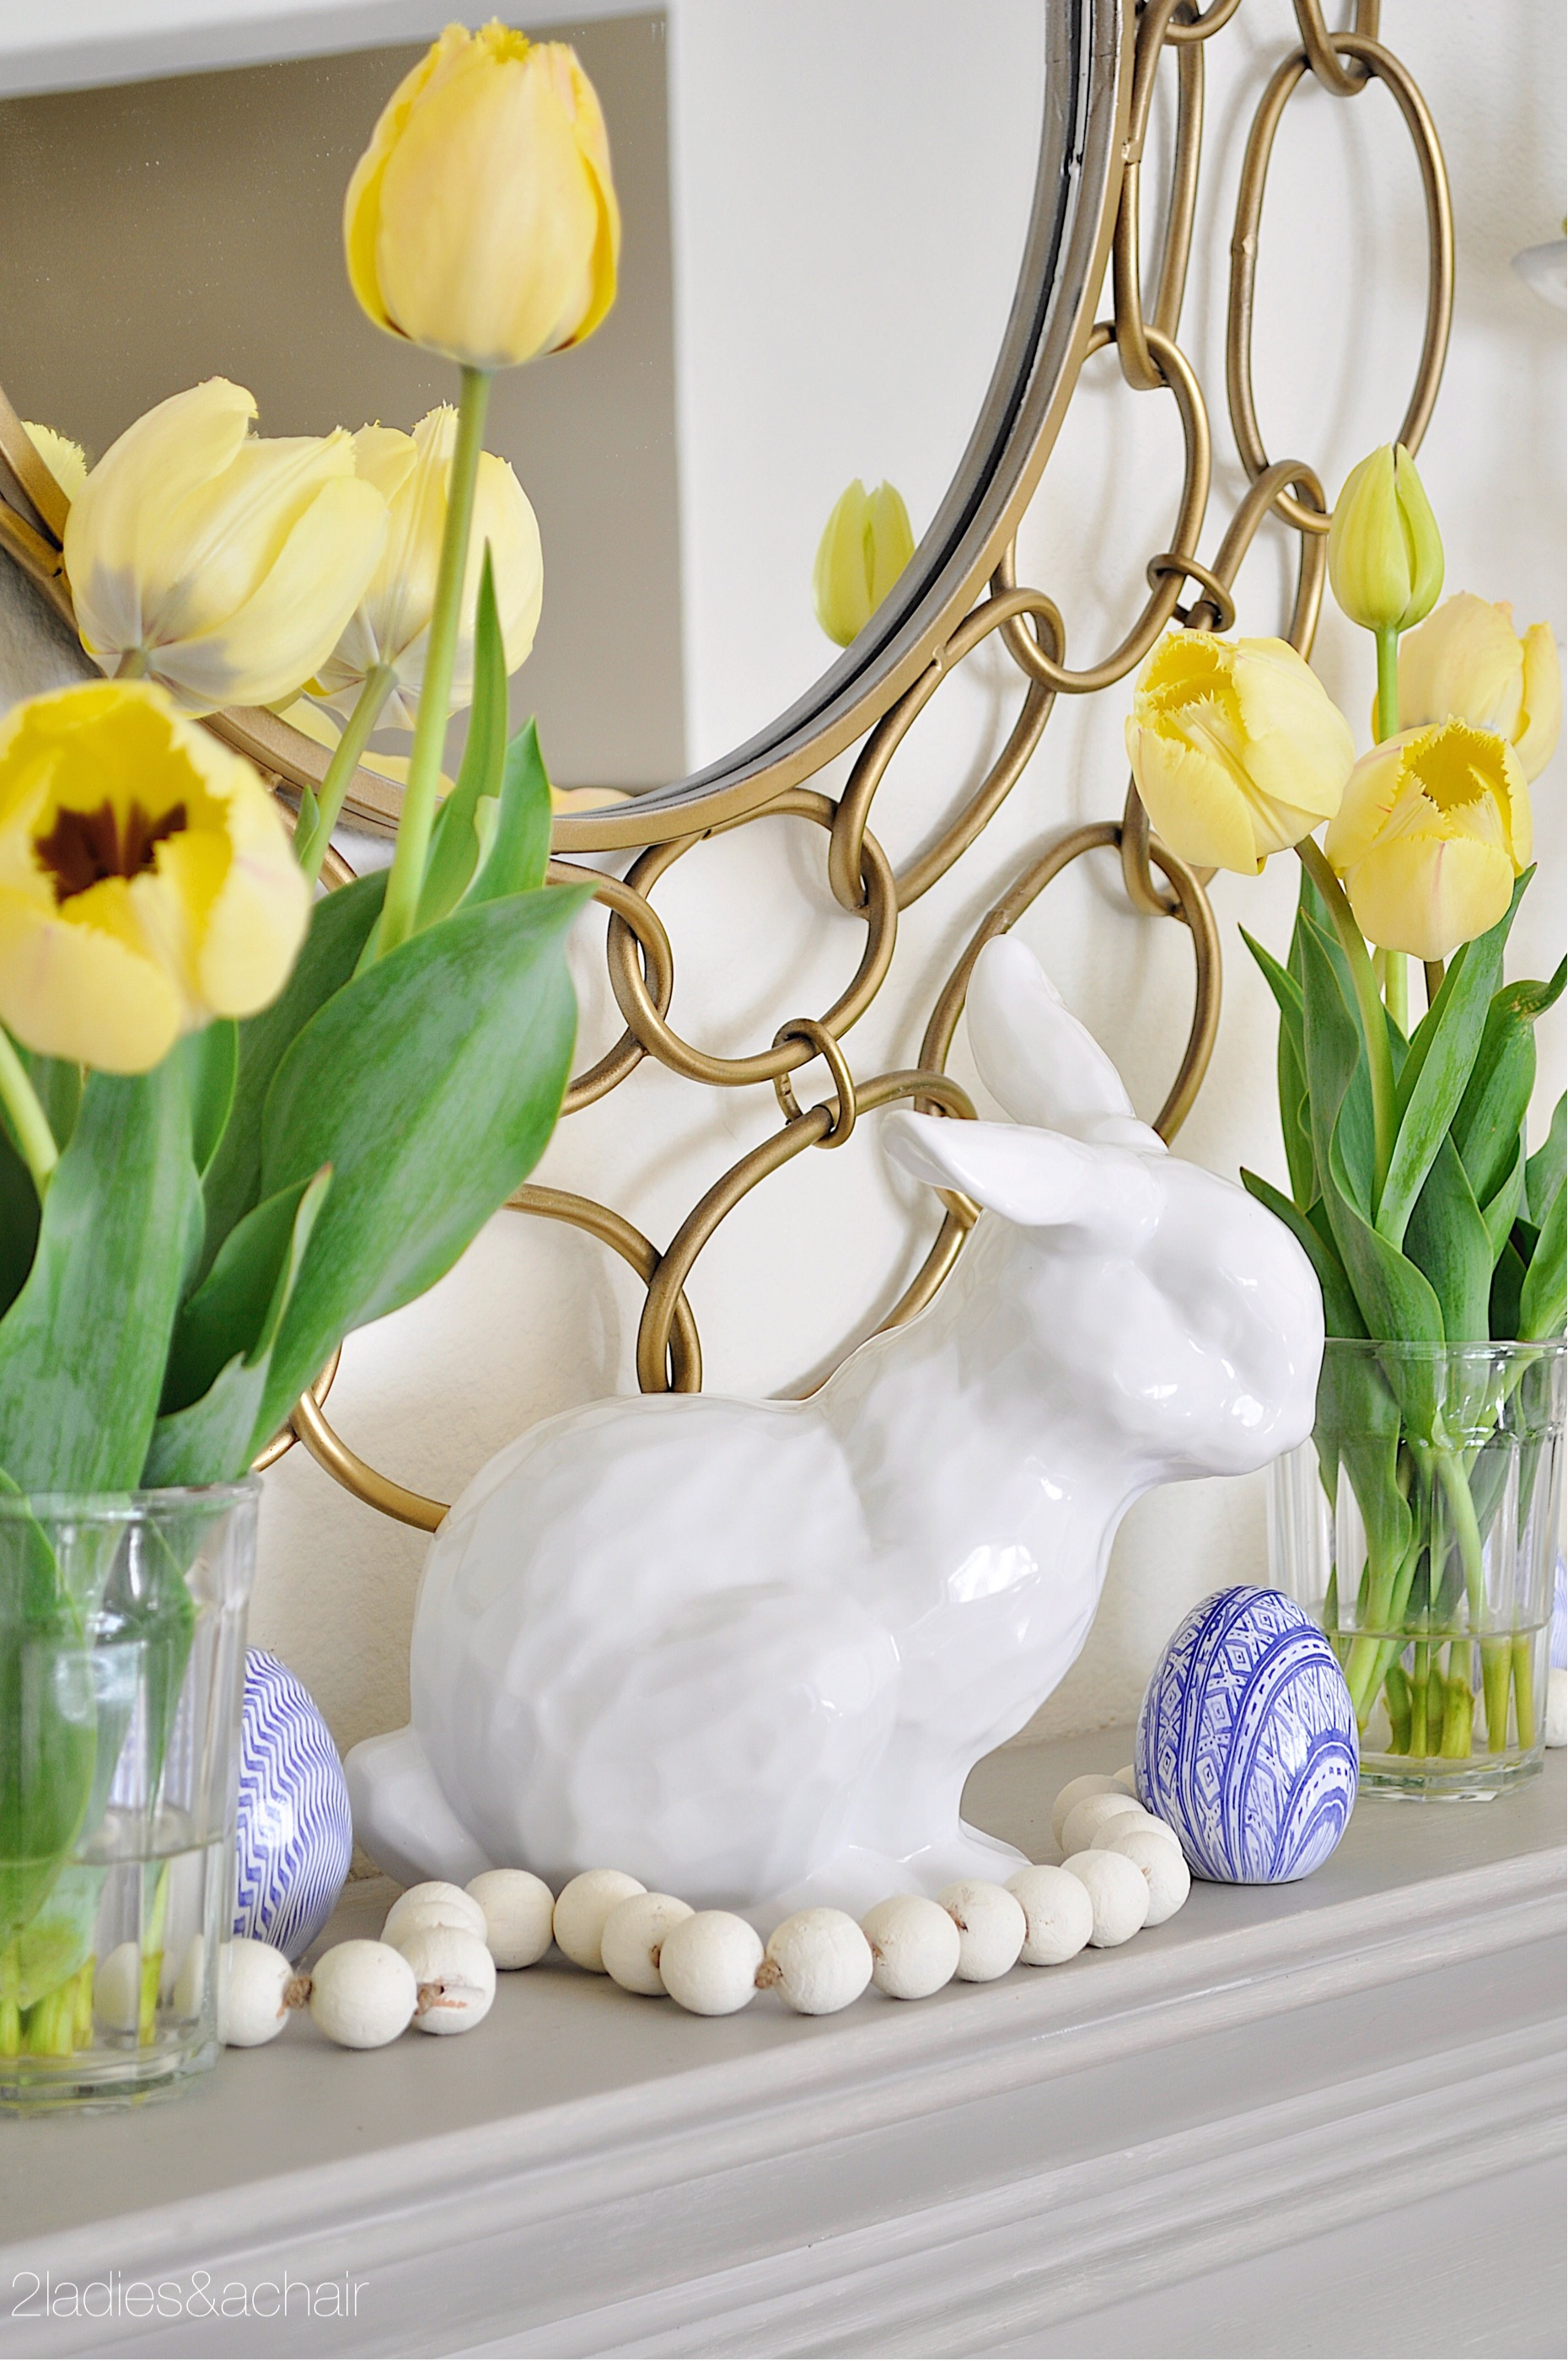 easter mantel decor IMG_1893.JPG